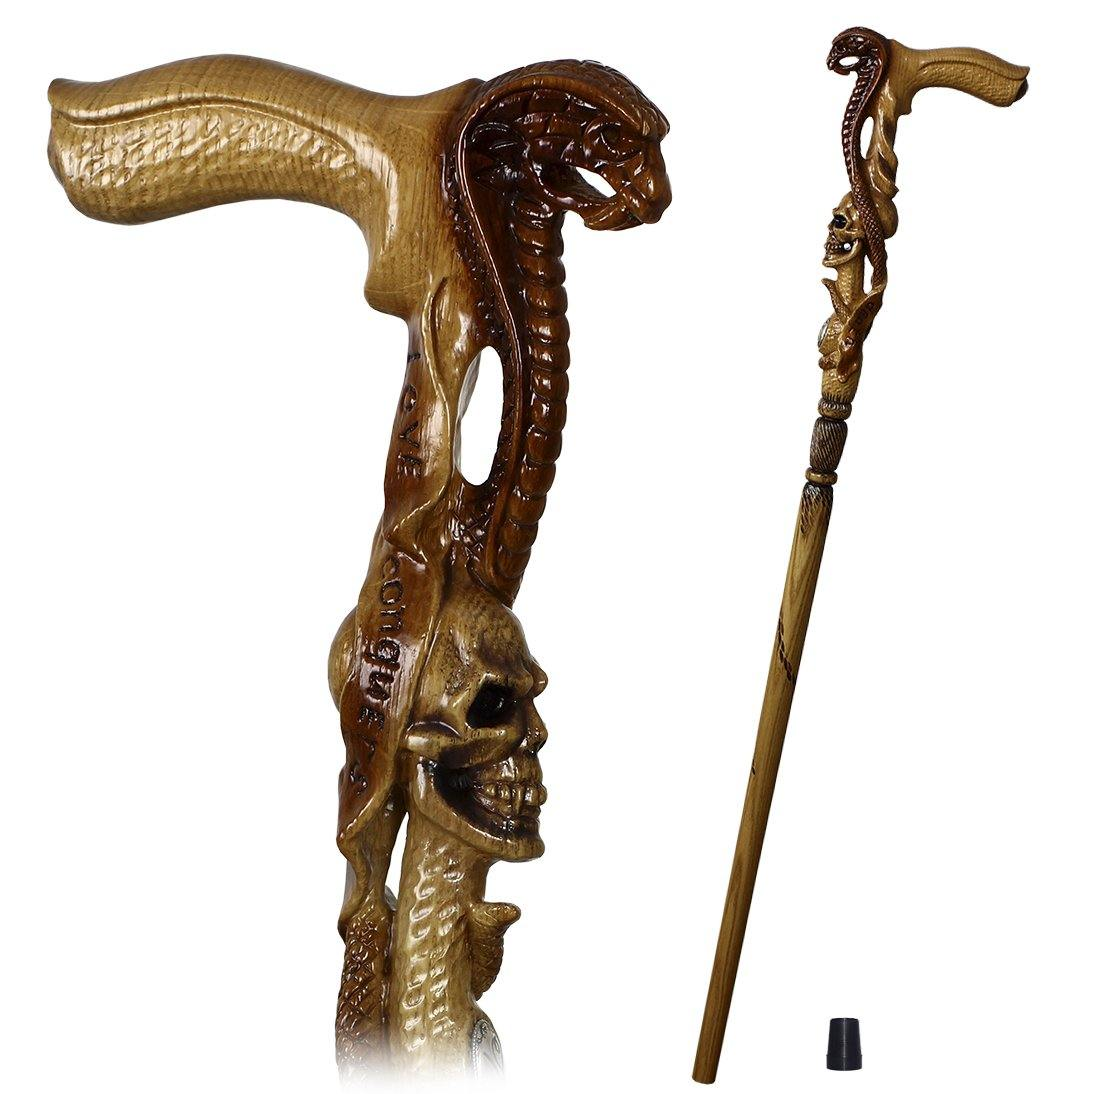 Snake Cobra & Skull wooden walking cane stick hiking Staff light - GC-Artis Walking Sticks Canes